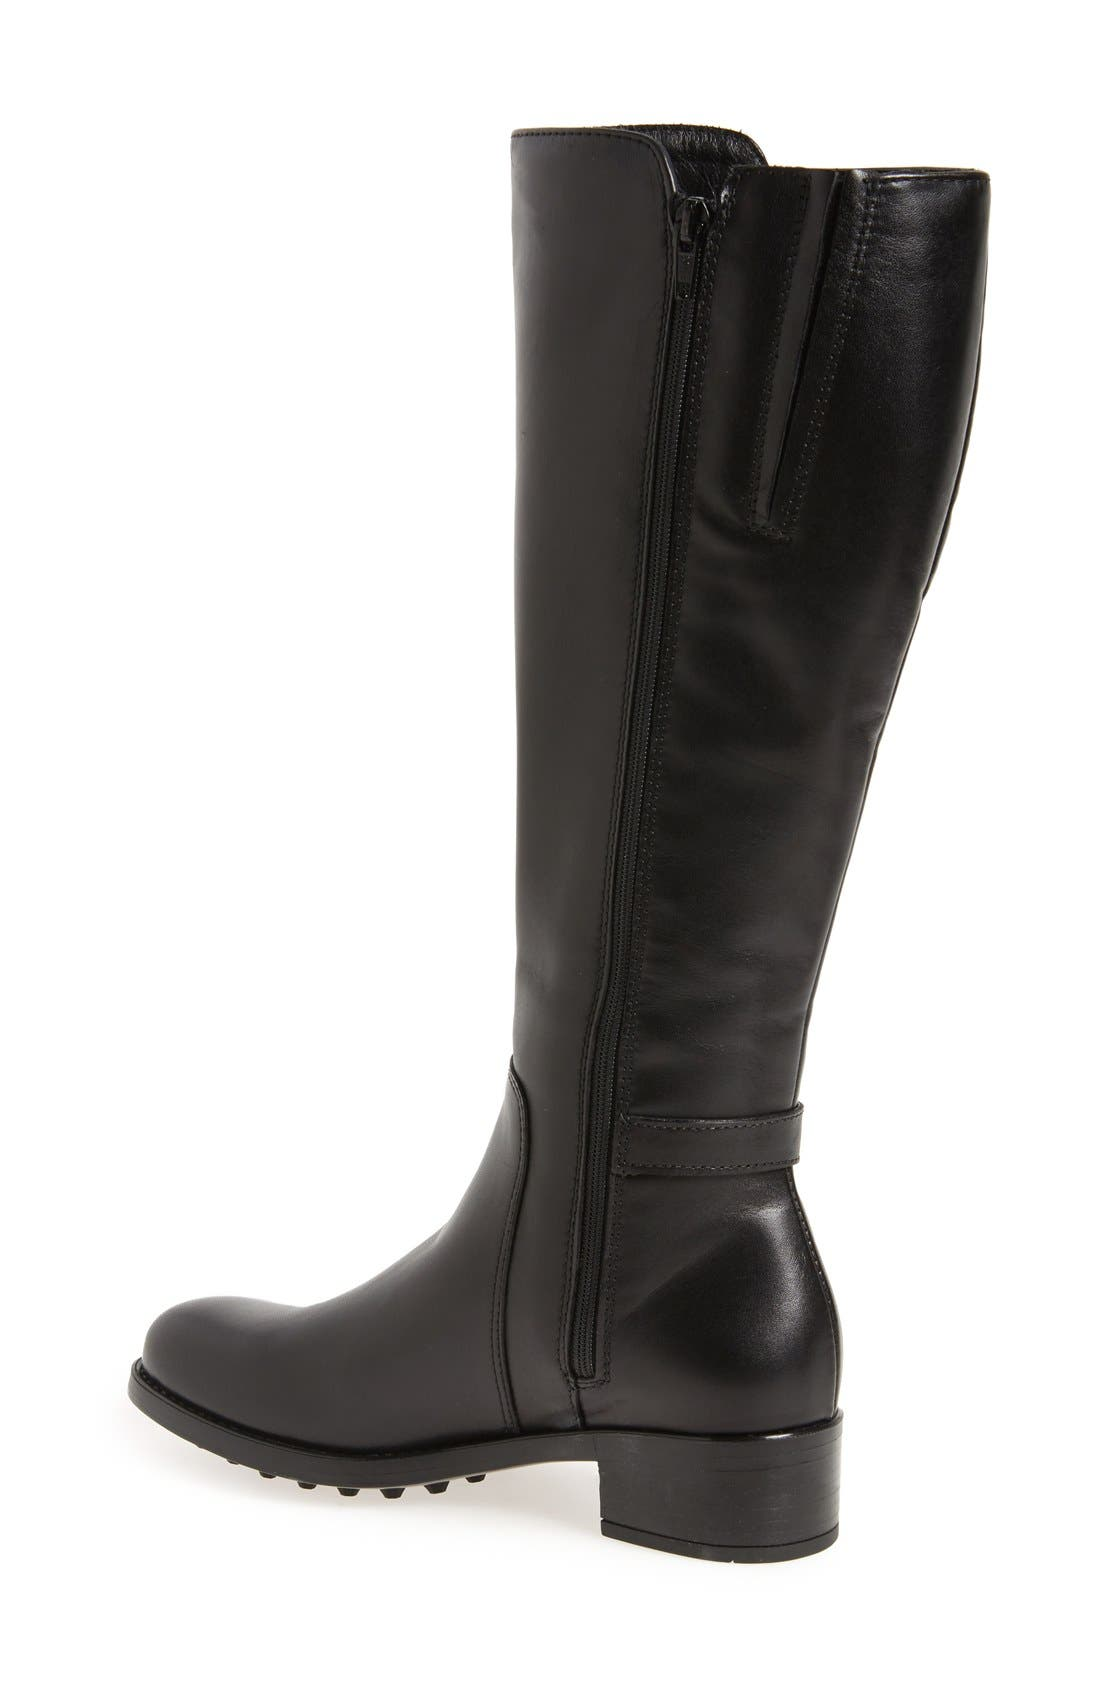 LA CANADIENNE, Silvana Waterproof Riding Boot, Alternate thumbnail 2, color, BLACK LEATHER